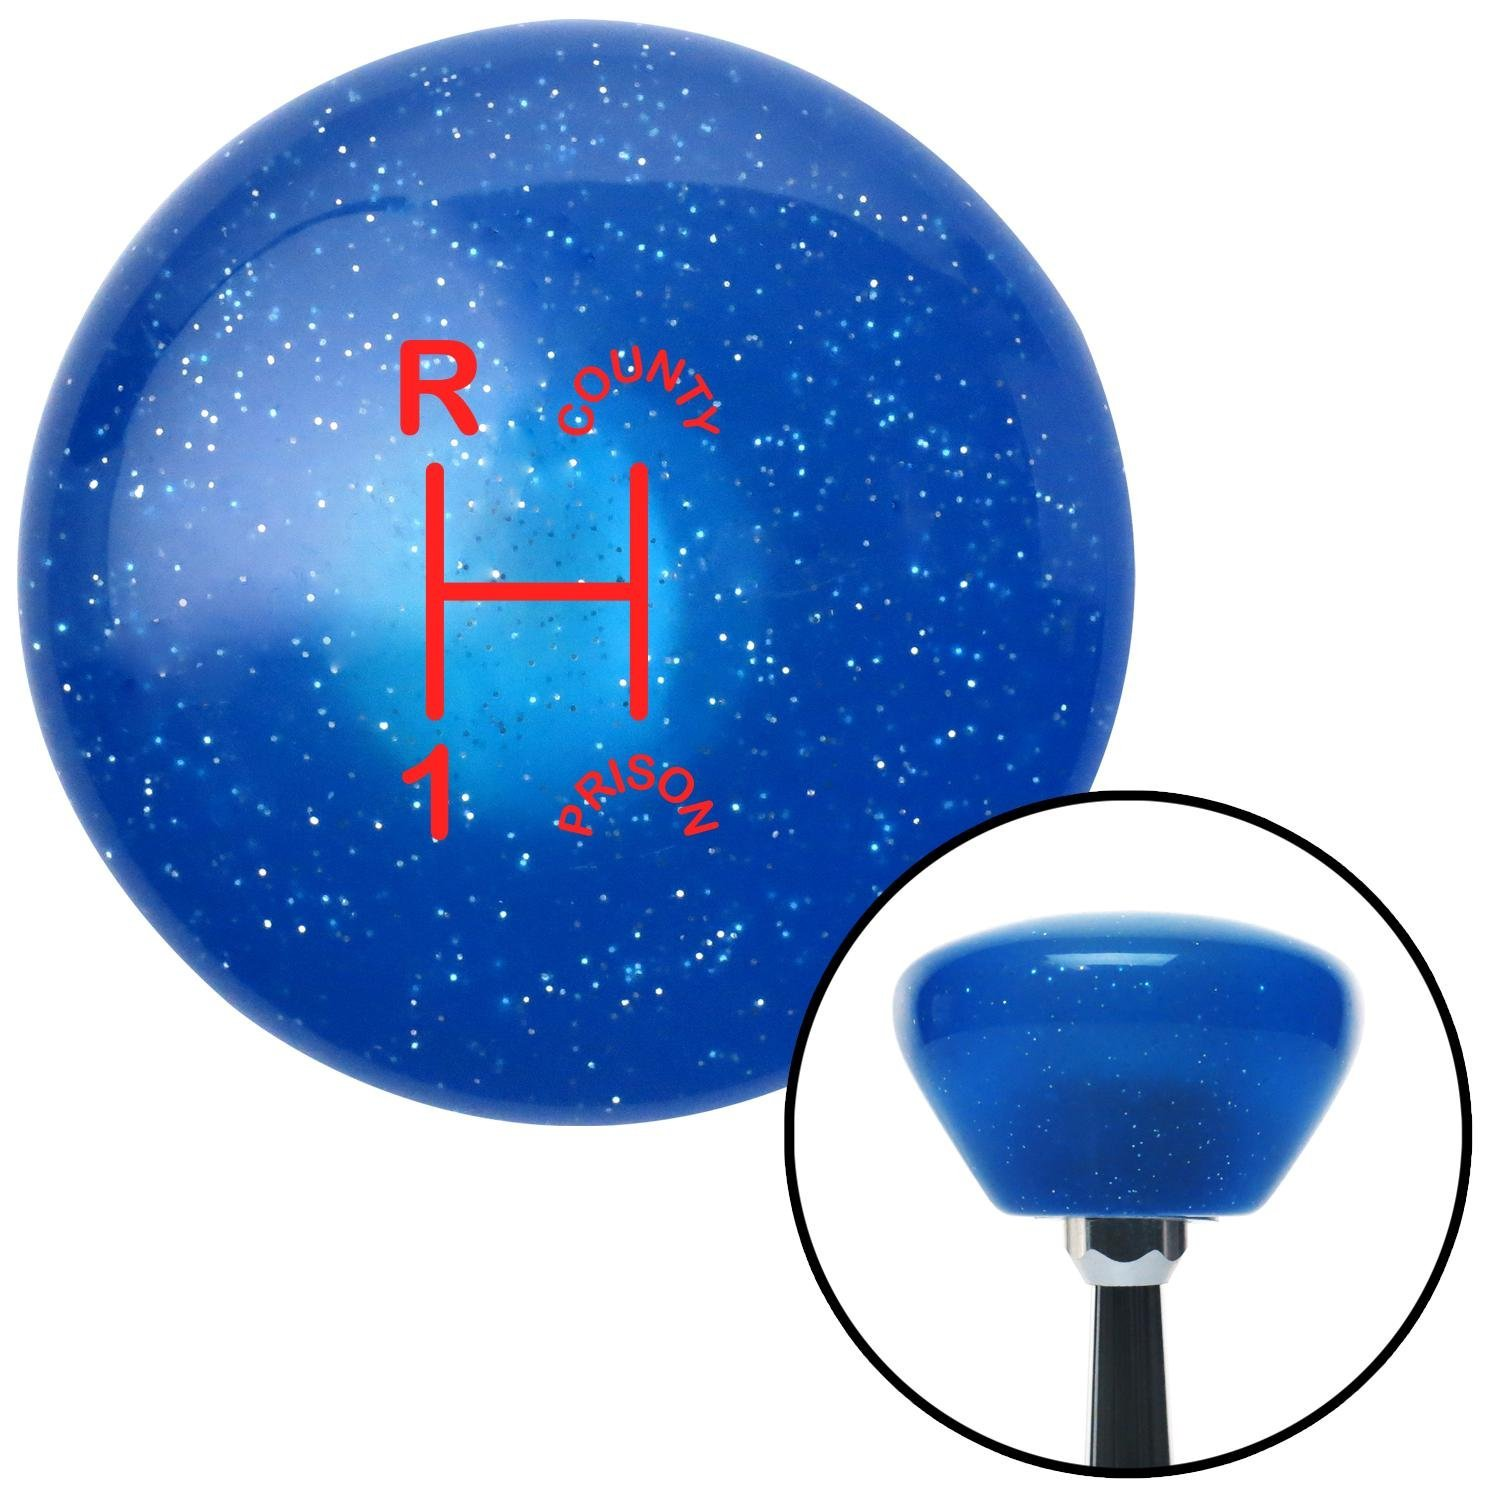 American Shifter 192179 Blue Retro Metal Flake Shift Knob with M16 x 1.5 Insert Red Shift Pattern CP11n